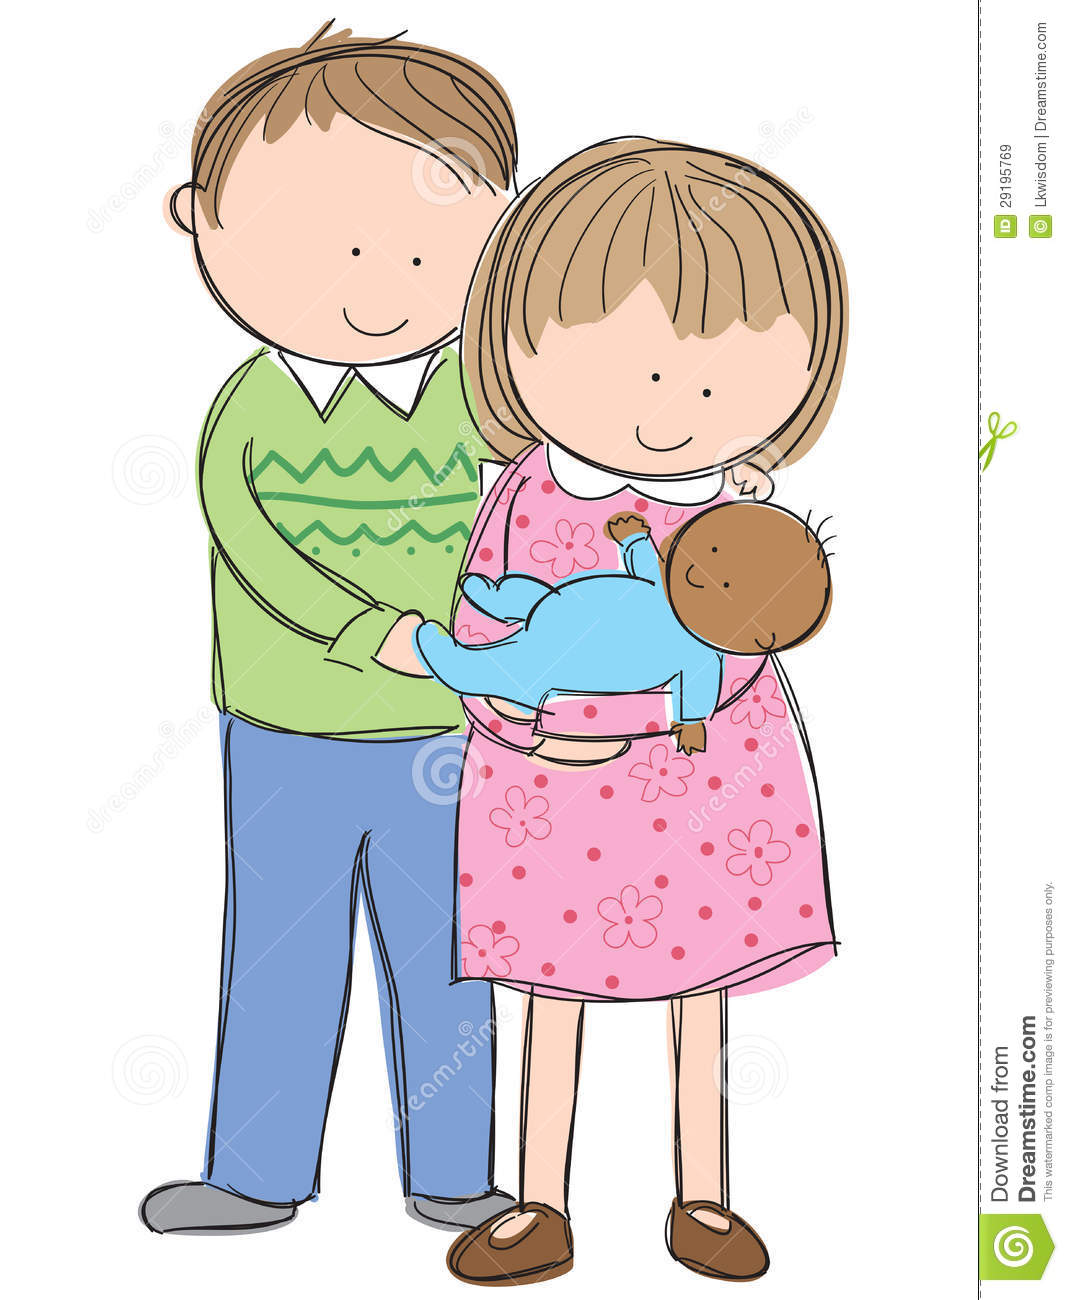 Adoption Clipart - Clipart Kid